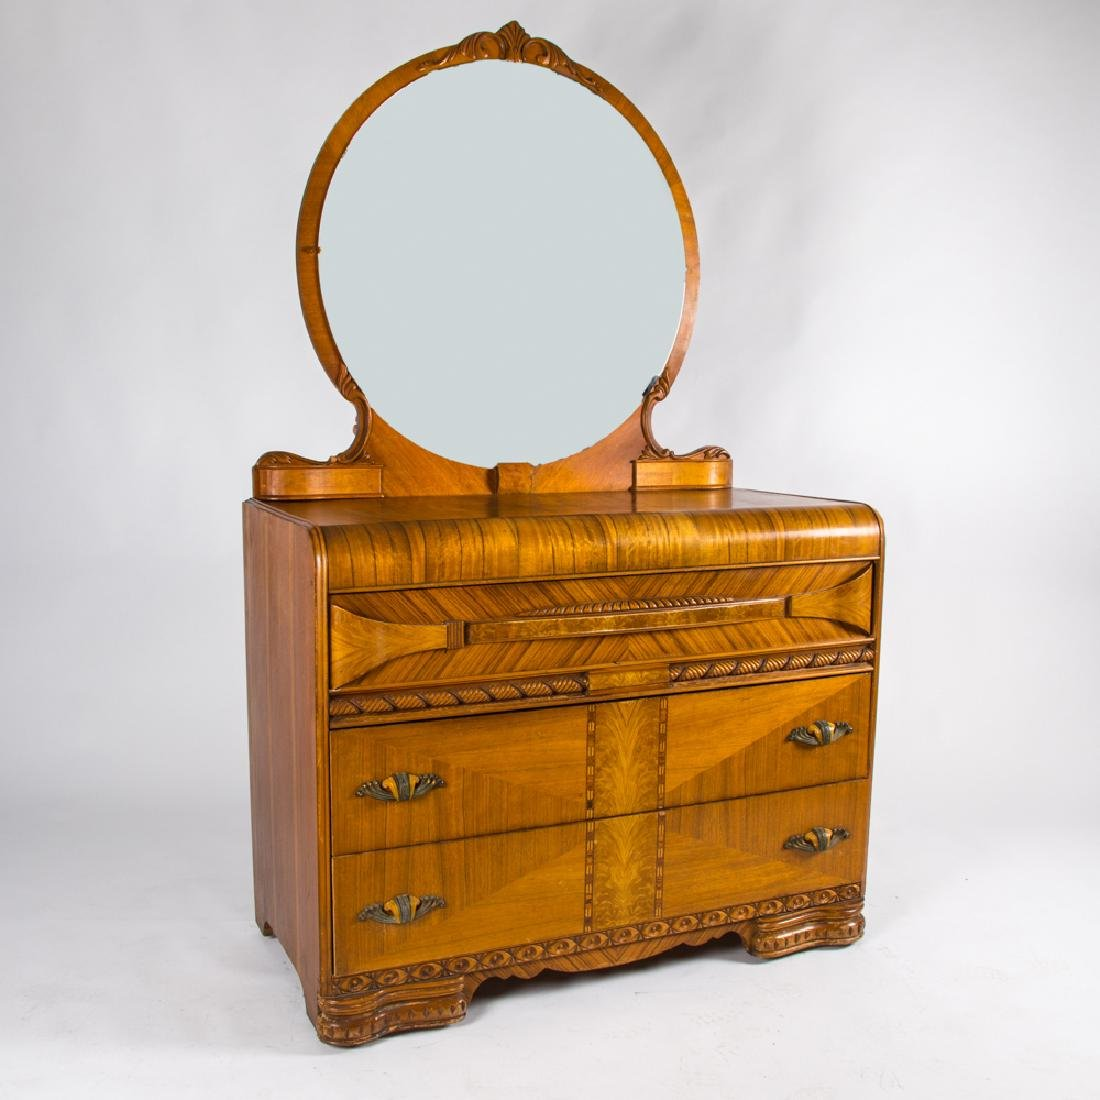 A Vintage Deco Maple Chest of Drawers with Mirror, 20th